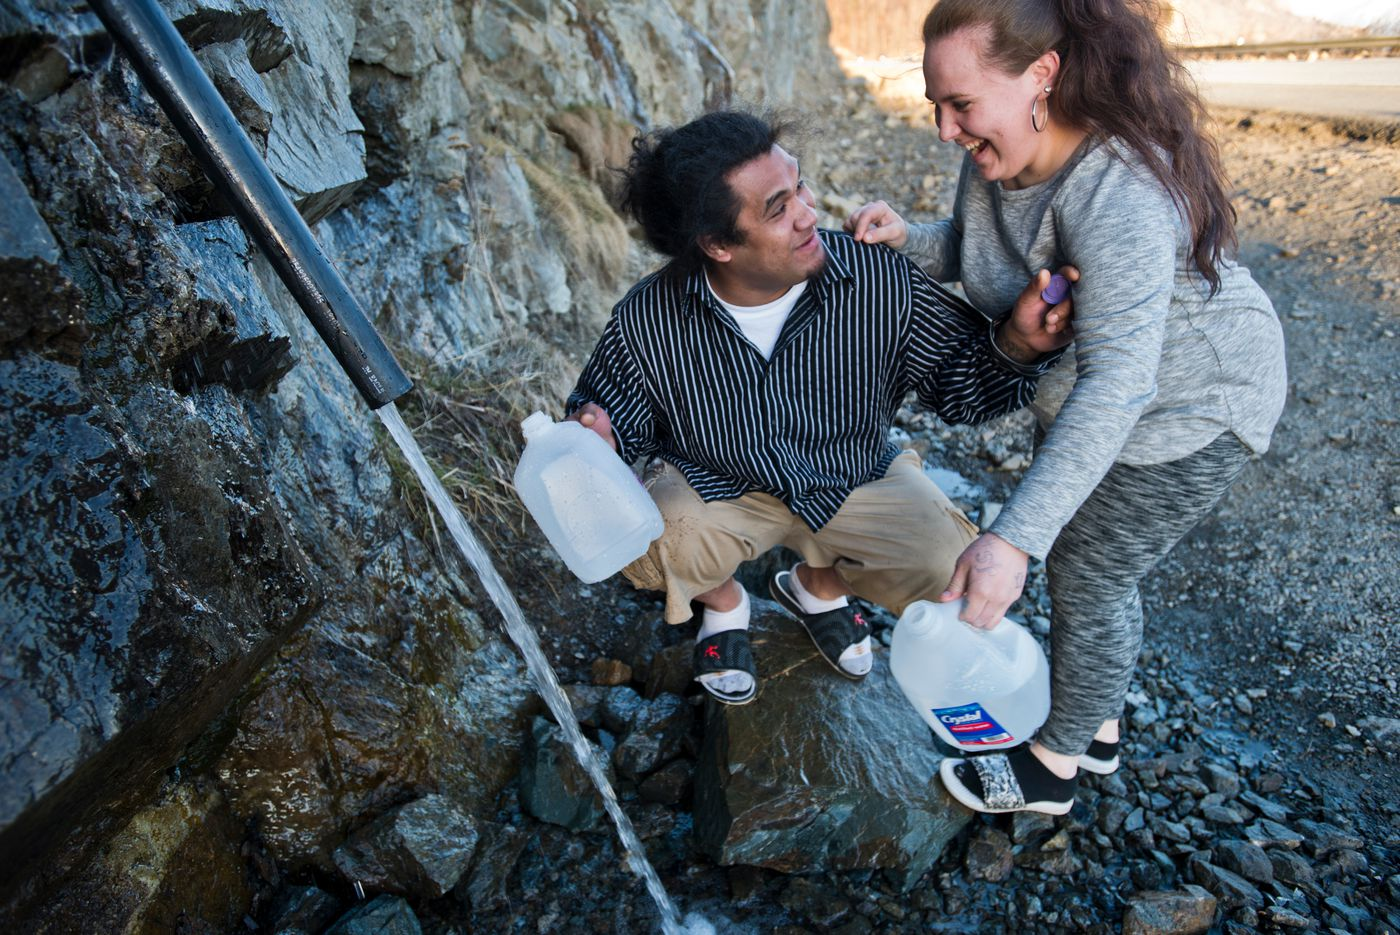 Paypay Oloi and Amelia Reed say they make the trip regularly to collect water from the pipe sticking out of the rocks at Mile 109 of the Seward Highway. They each filled 1-gallon jugs. (Marc Lester / Alaska Dispatch News)